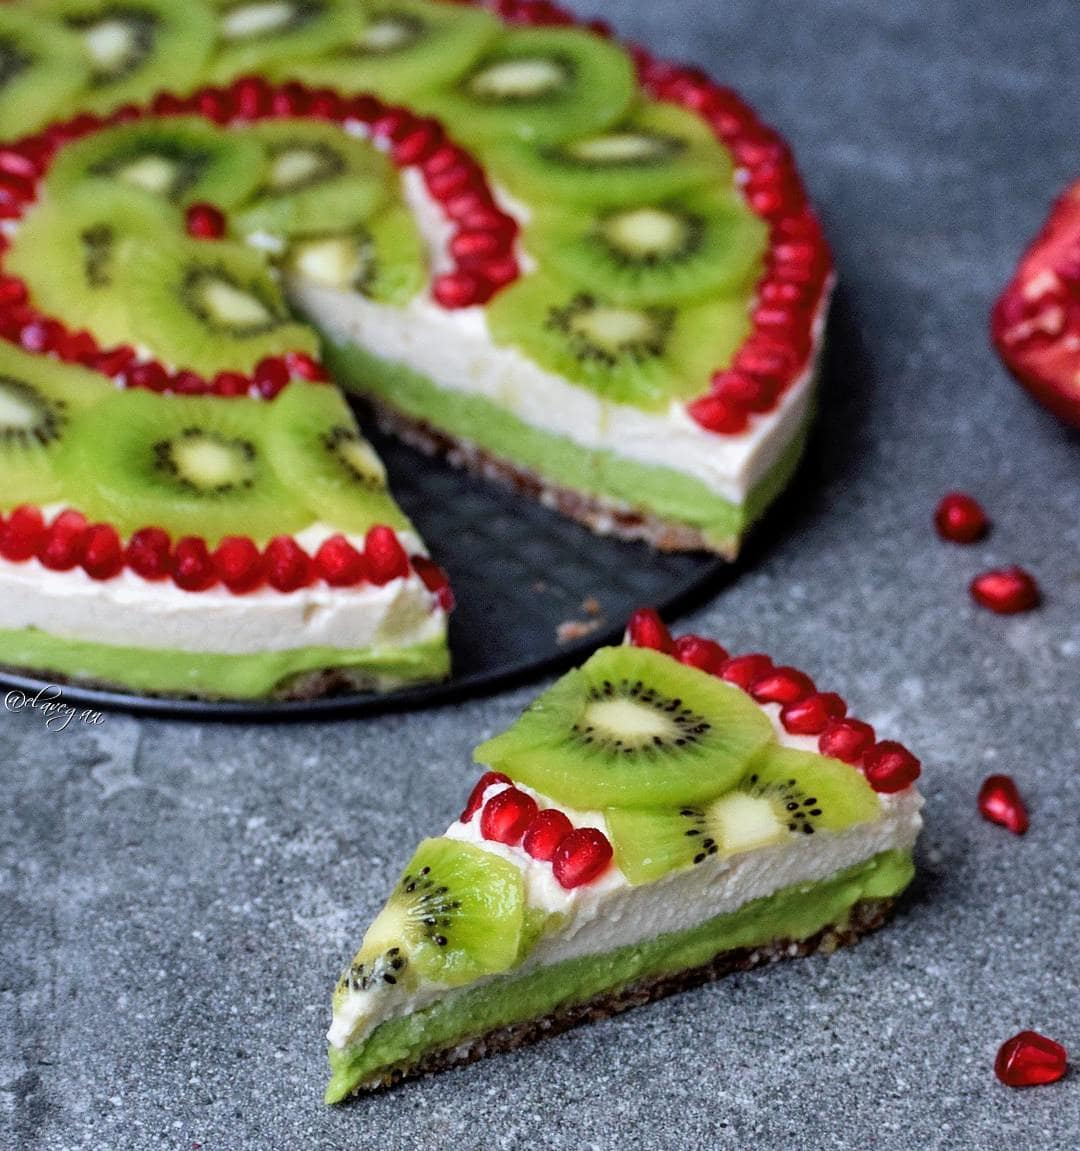 Vegan fruity cheesecake with an avocado and gluten-free cashew layer. Decorated with kiwi and pomegranate.